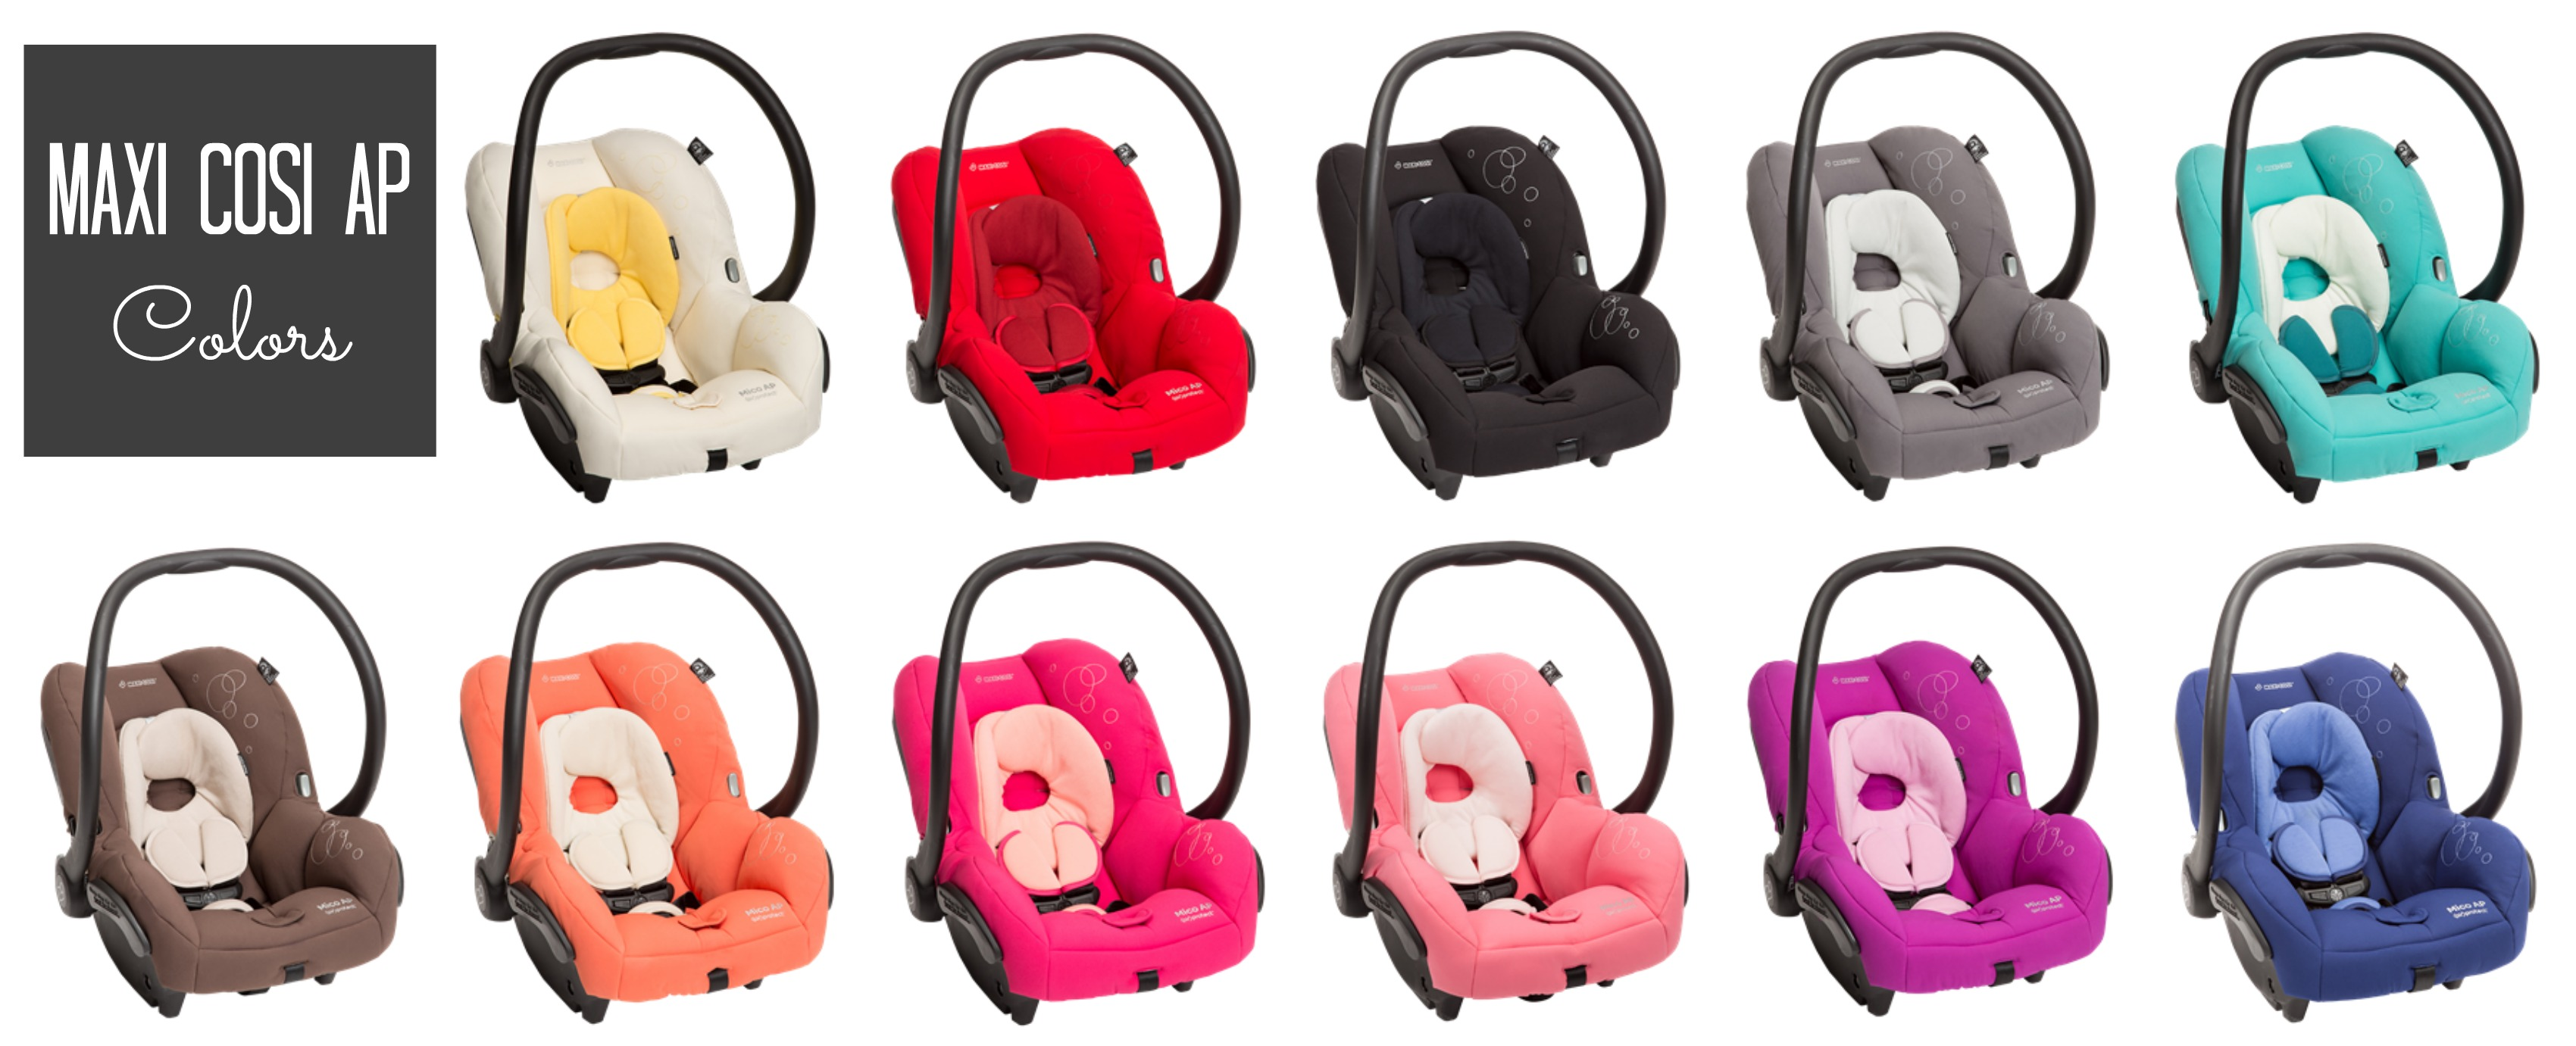 MaxiCosiAPColors · MaxiCosiAPTheWhiteCollection  sc 1 st  Little BGCG & Maxi Cosi AP Review: Final Thoughts - Little Us